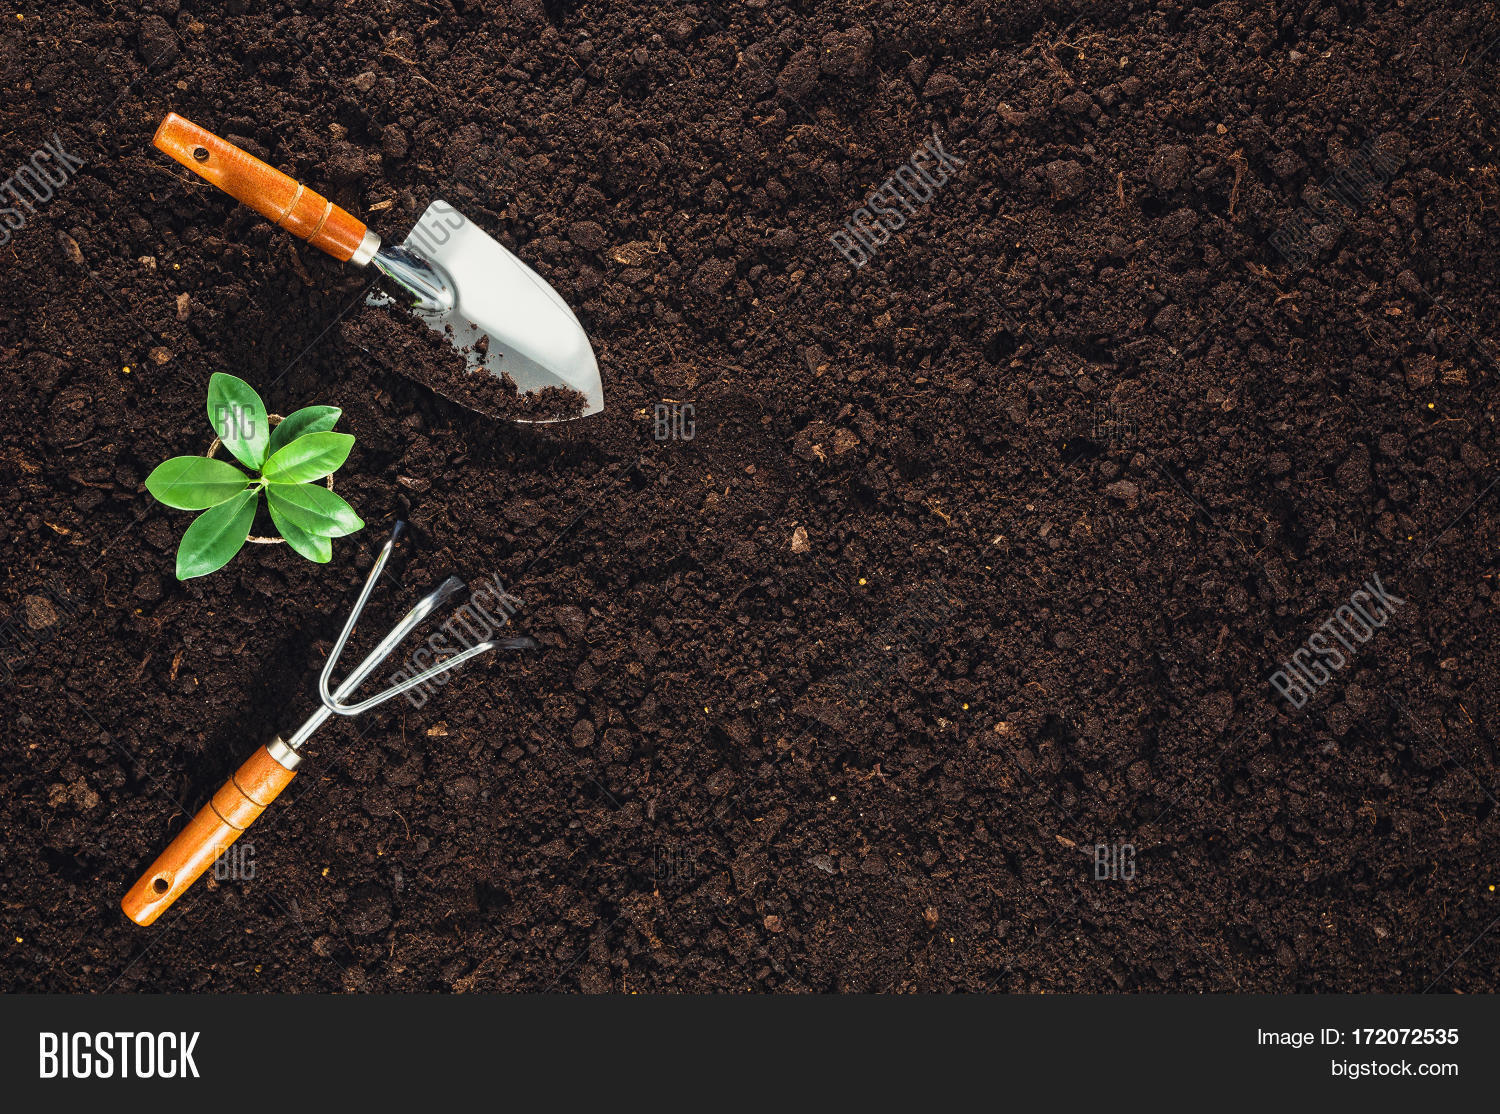 Gardening tools on fertile soil image photo bigstock for Soil utensils